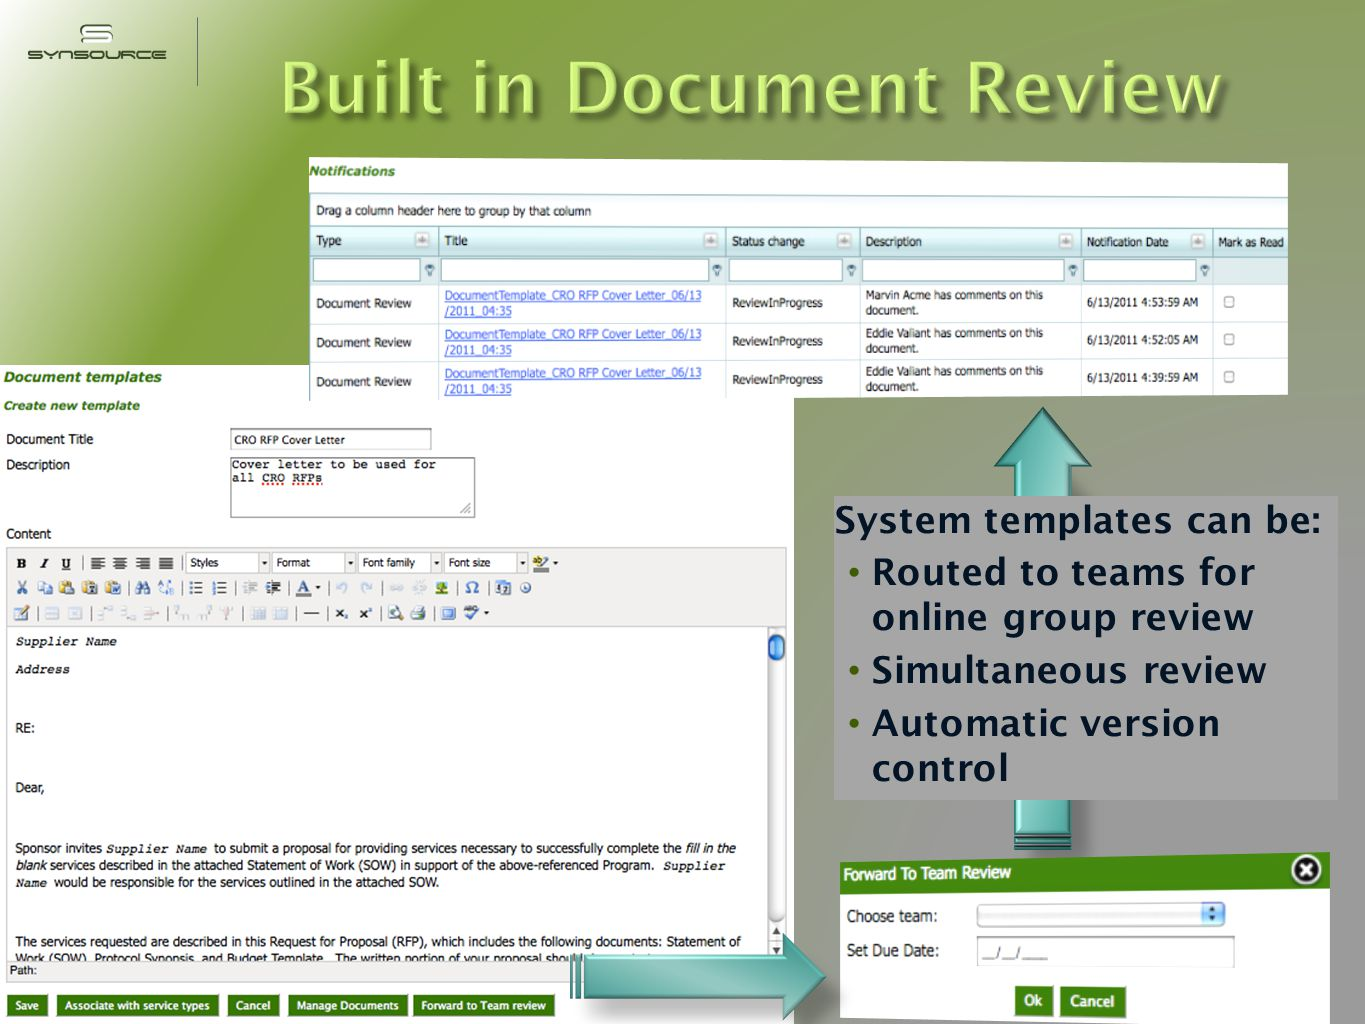 System templates can be: Routed to teams for online group review Simultaneous review Automatic version control